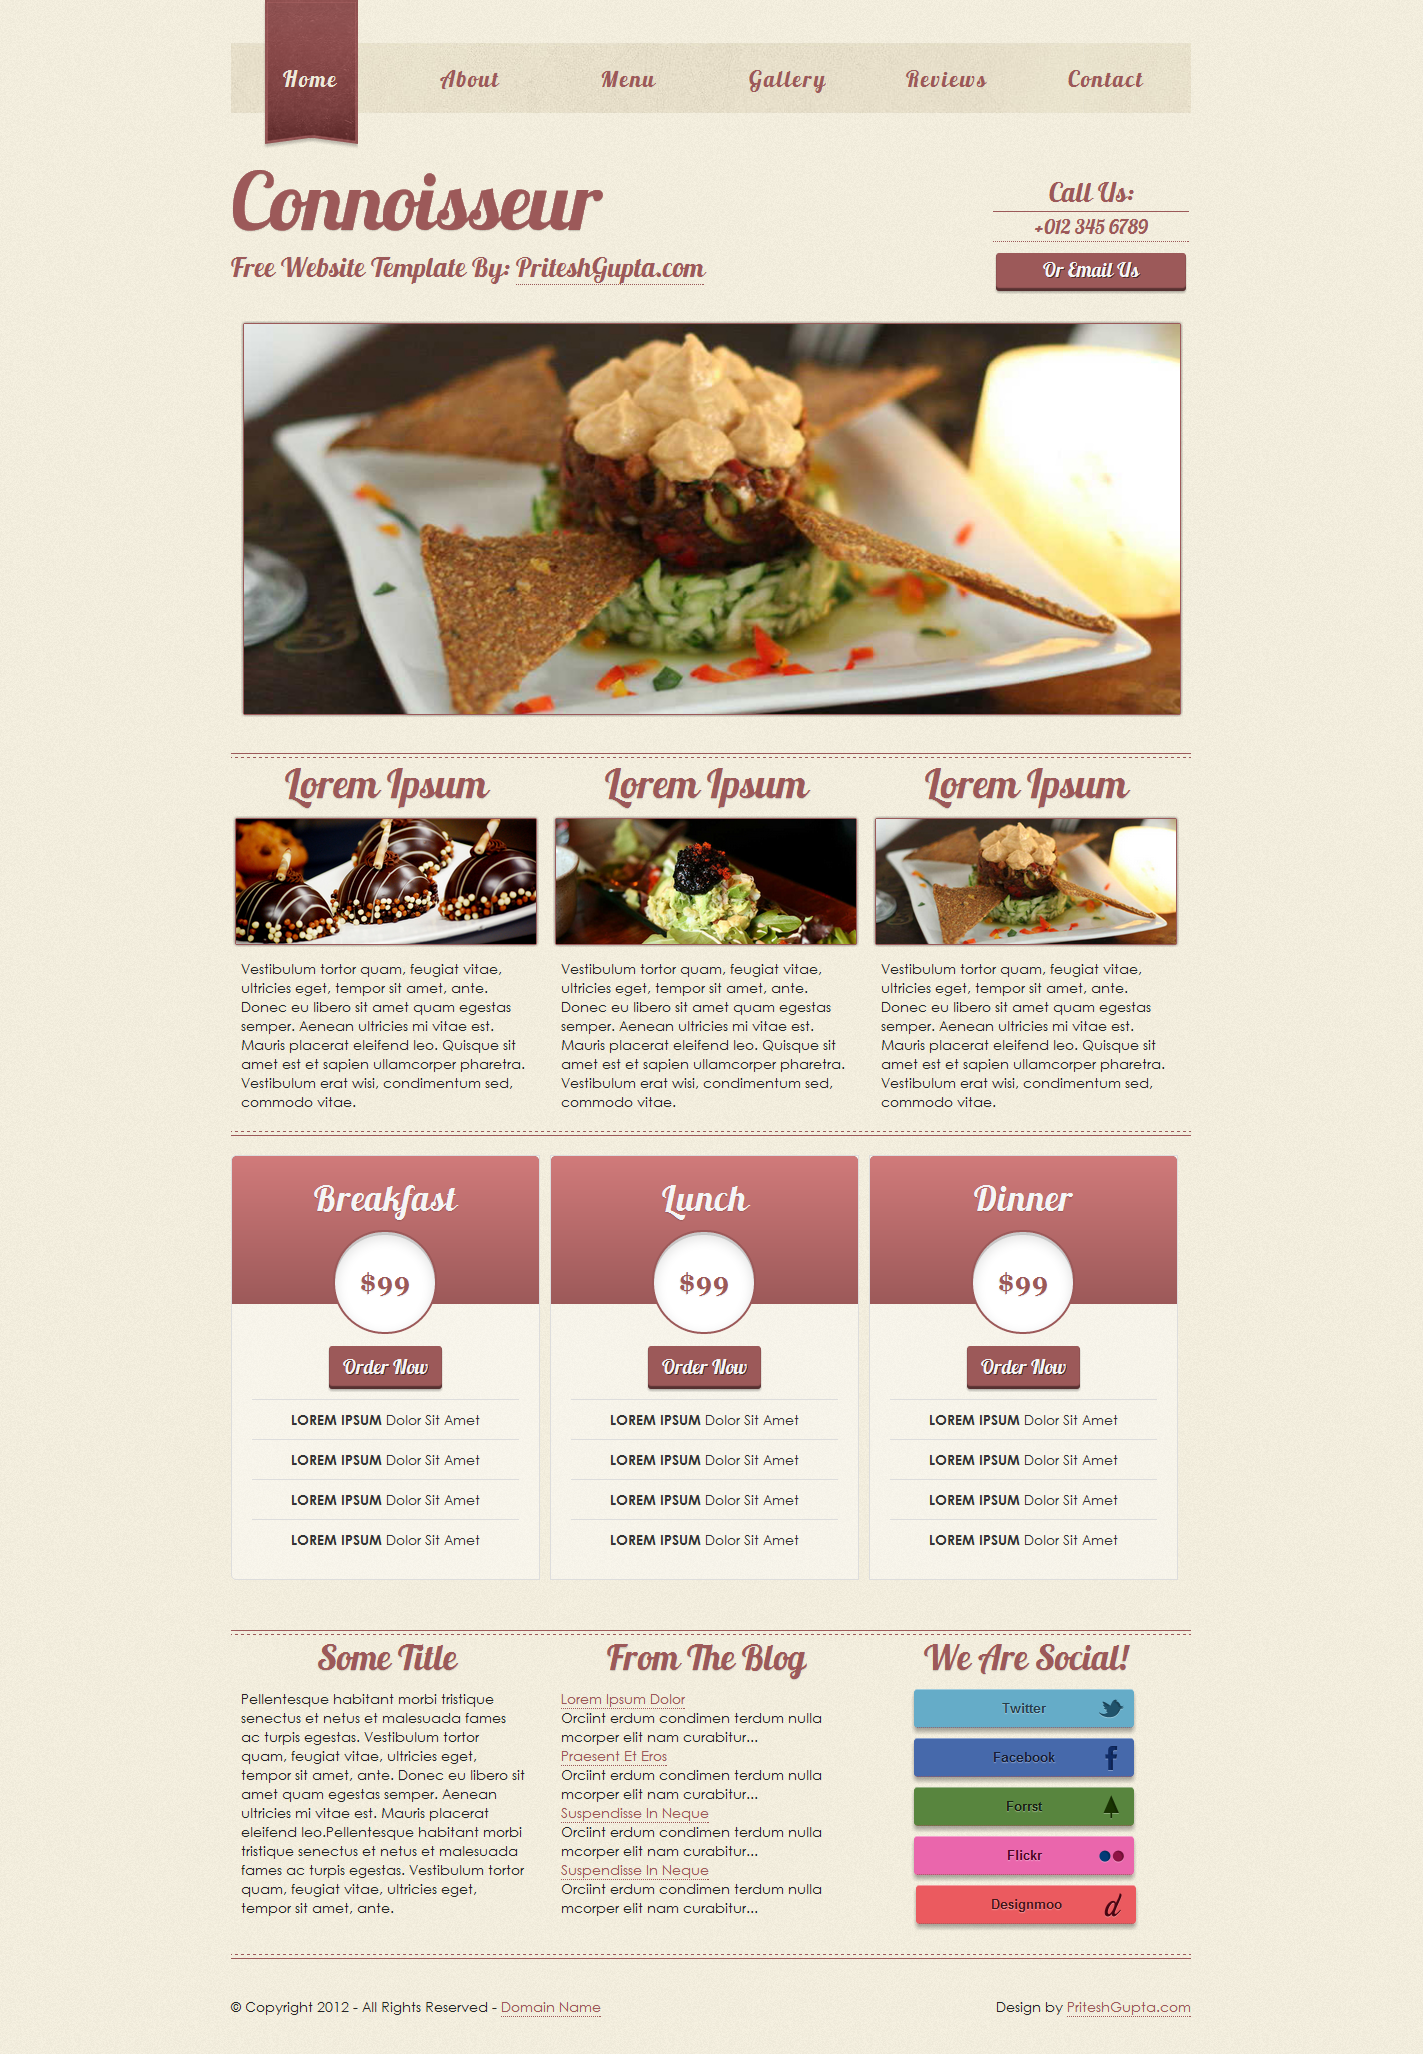 Connoisseur: Free Website Template | Pritesh Gupta